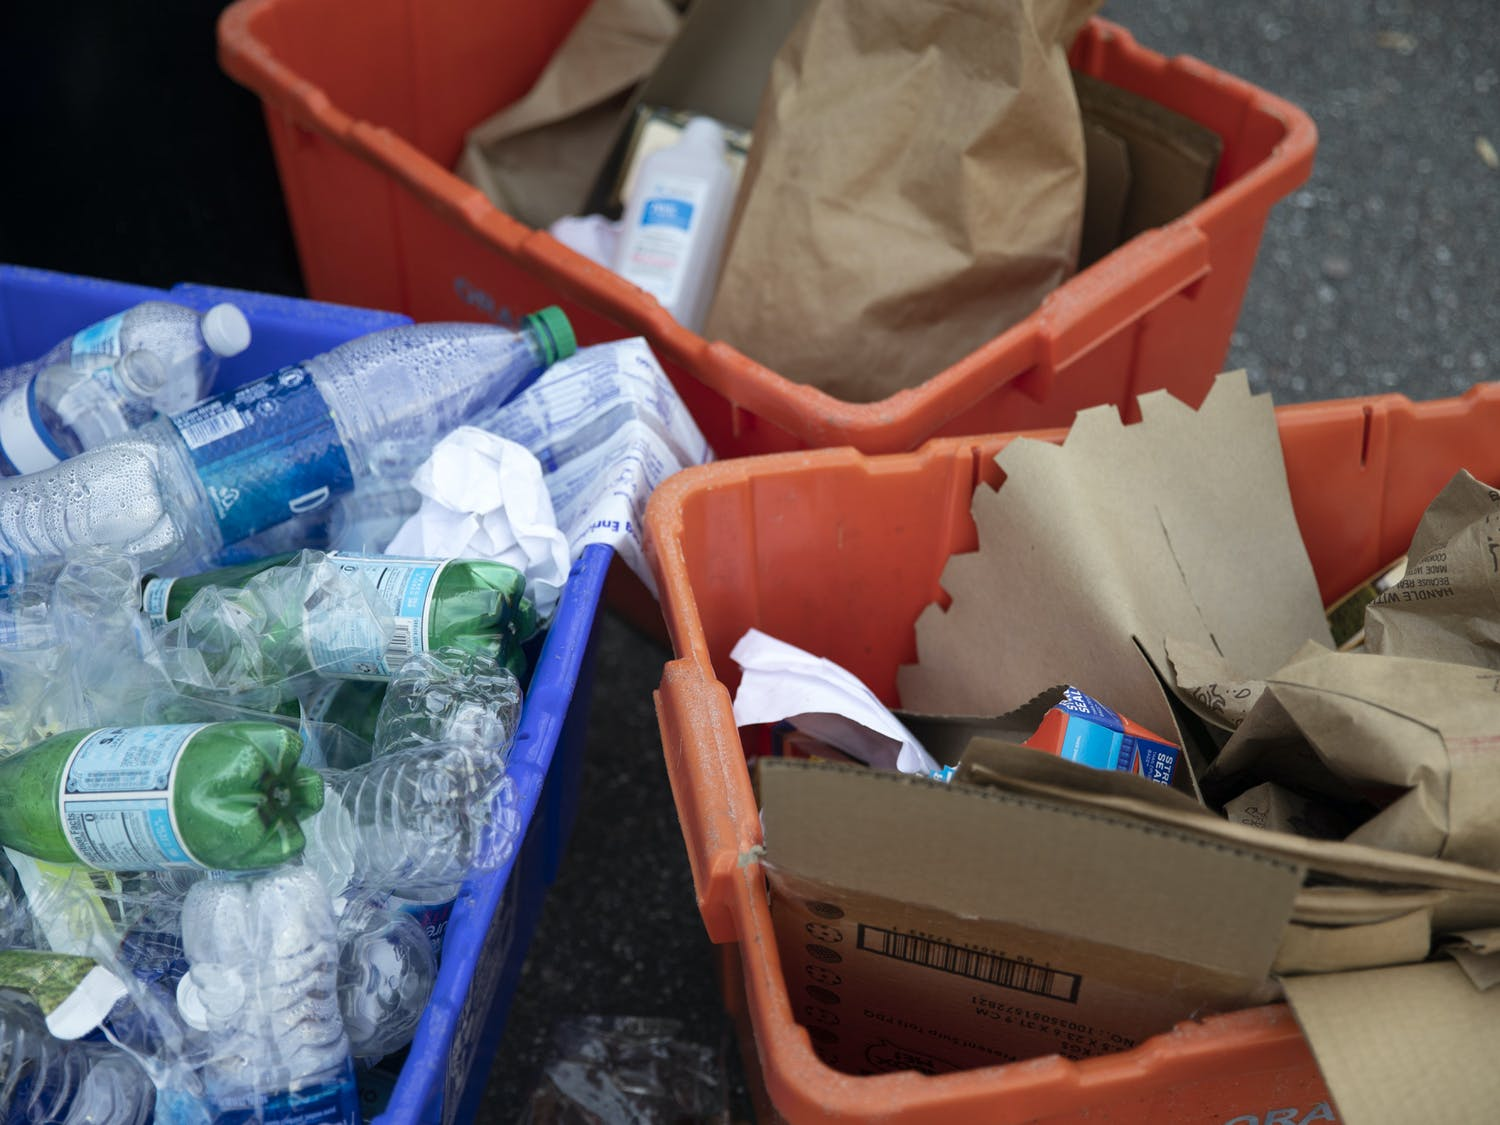 Plastic bottles and cartons were placed inside of orange and blue bins for recycling on Southwest 23rd Drive in Gainesville on Wednesday, May 12, 2021.